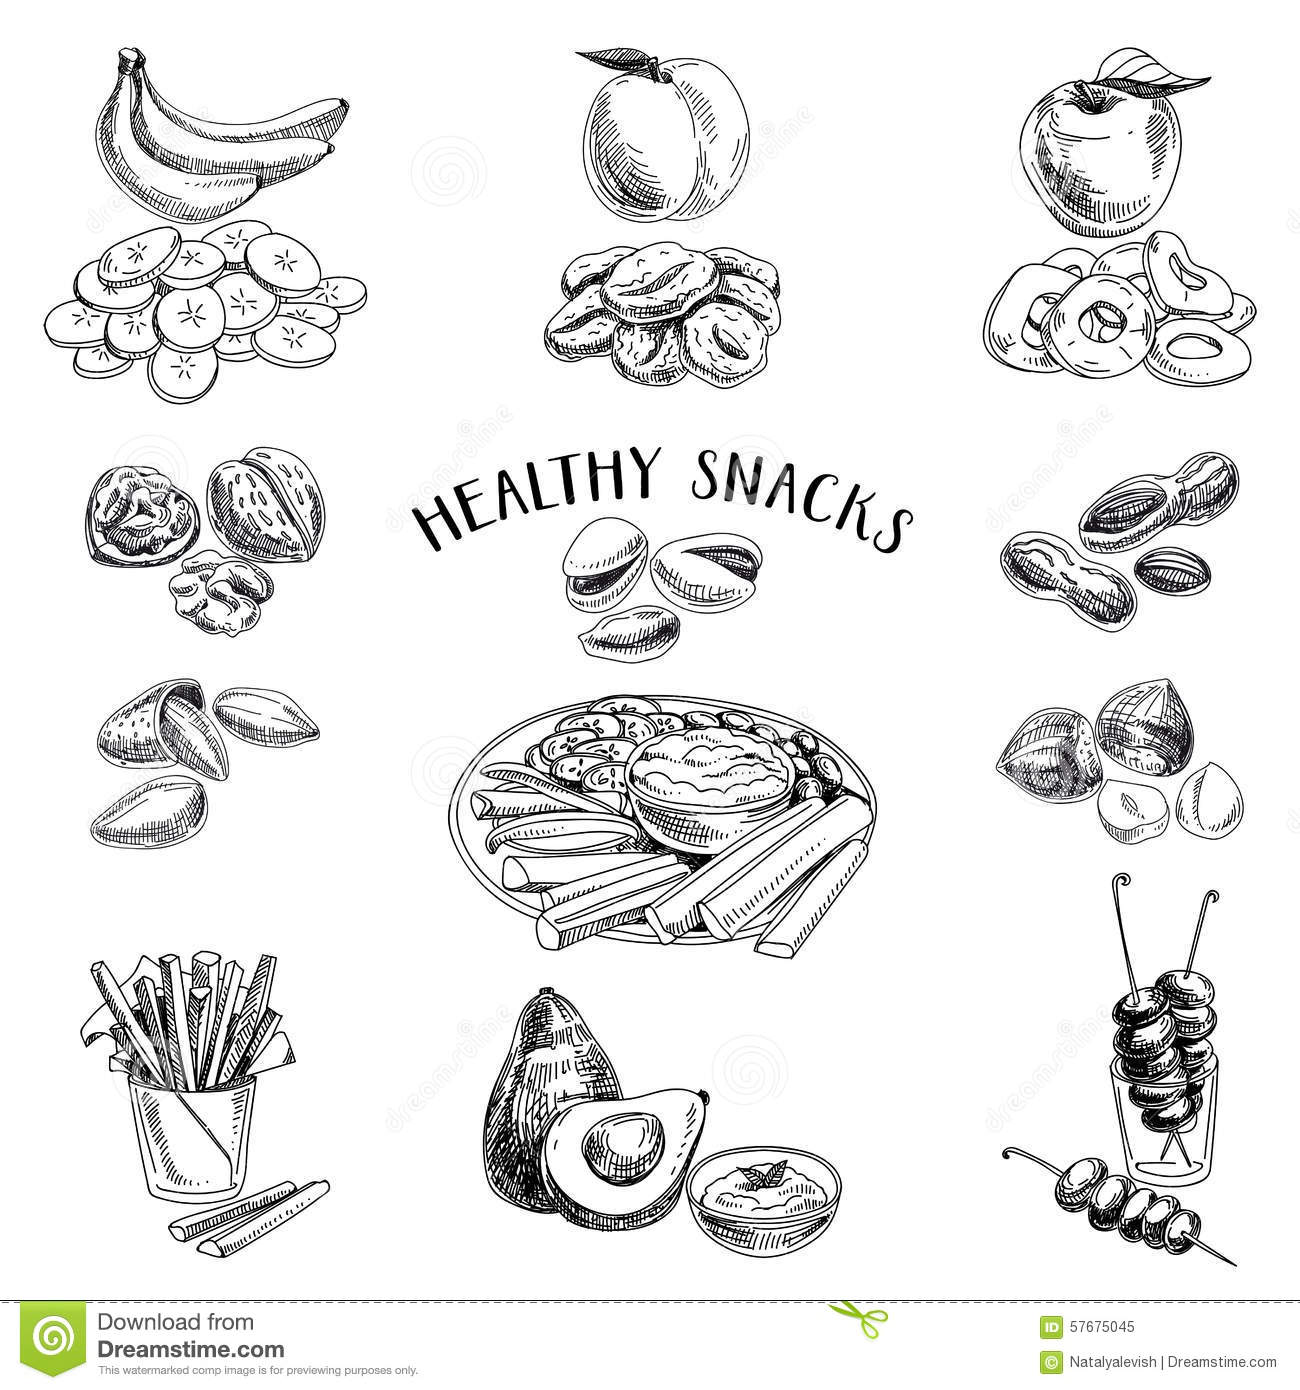 Healthy Food. Vector Illustration In Sketch Style Stock Vector - Image 57675045